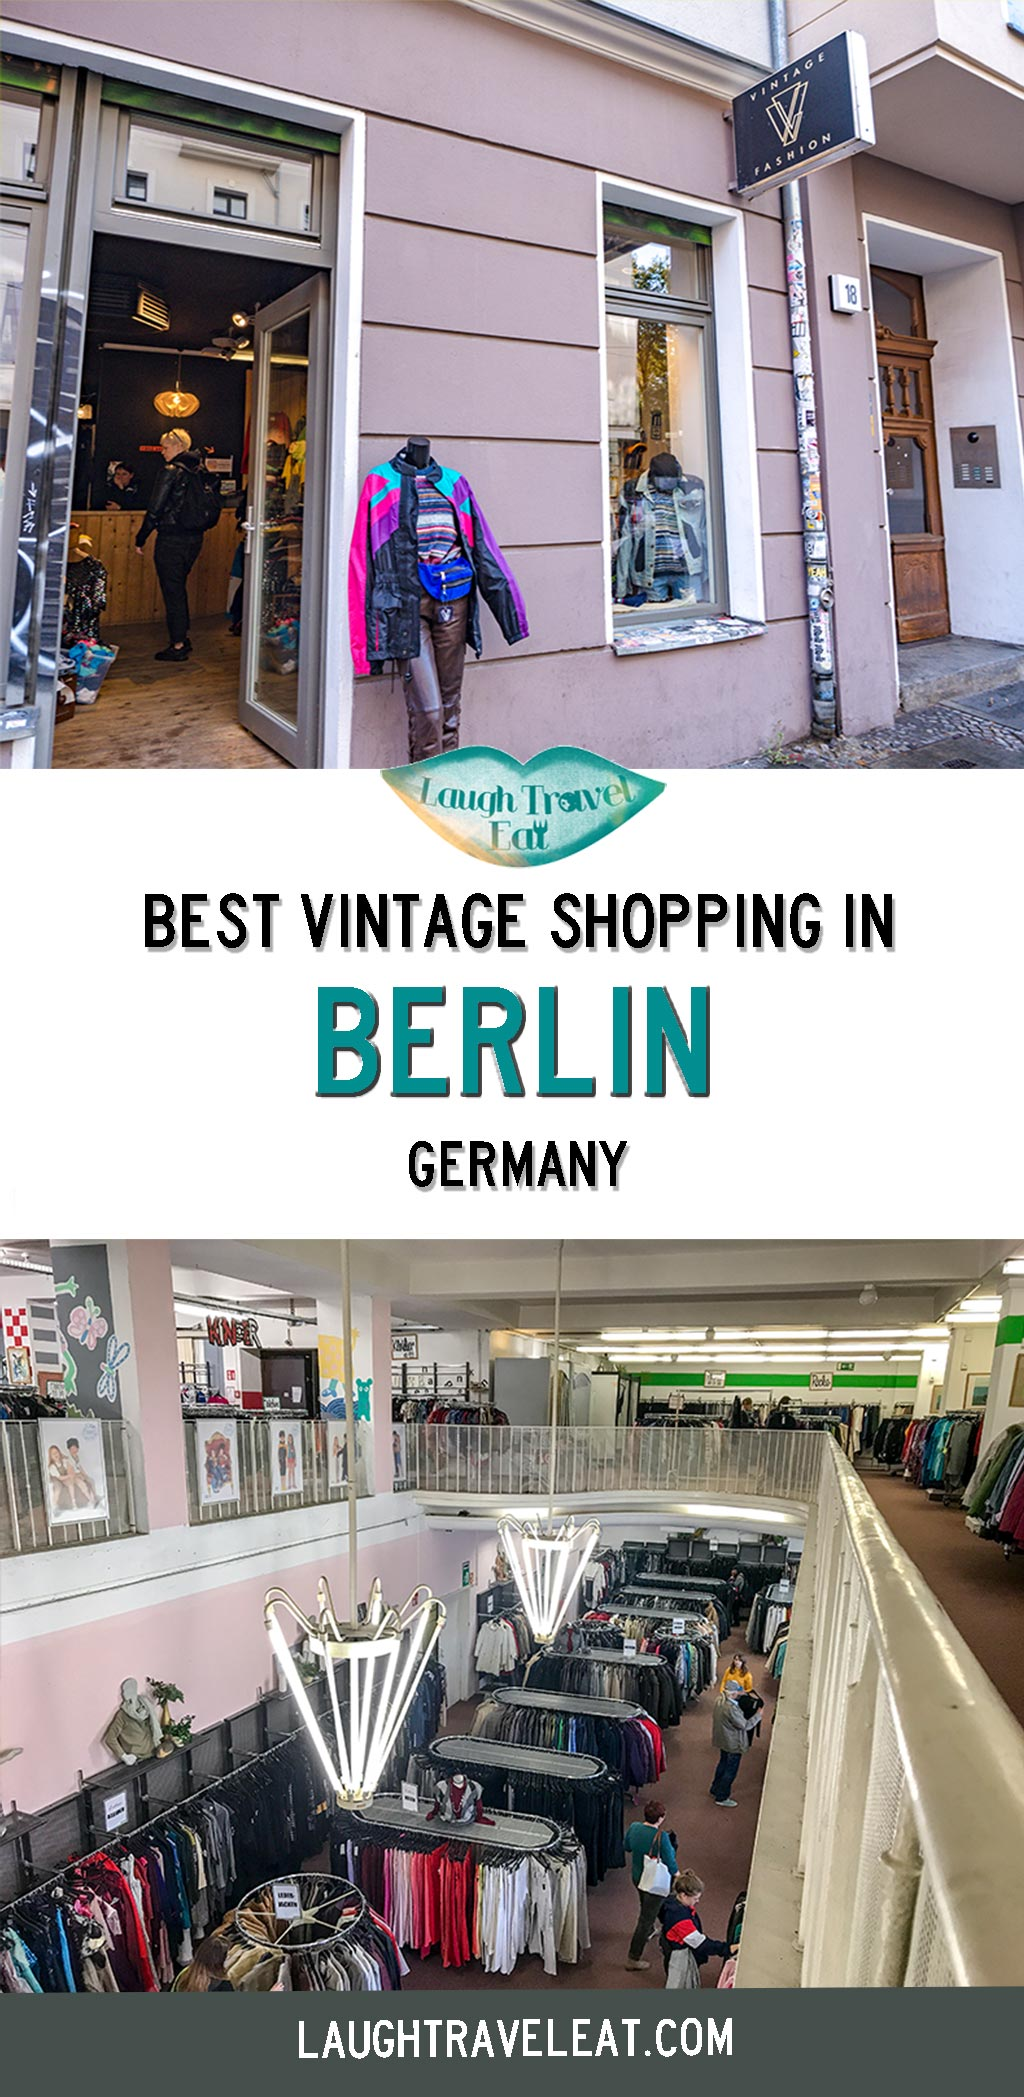 Vintage shopping is one of my guilty pleasures and there's nowhere better to indulge in it than Berlin. Markets are a great start, however, most only run on Sunday. Berlin has one of the best vintage shopping in Europe that I've seen, whether you are looking for something thrifty and cheap or authentic and unique, there's a place. So here is a list of my favorite Berlin thrift and vintage stores. #Berlin #Vintage #Shopping